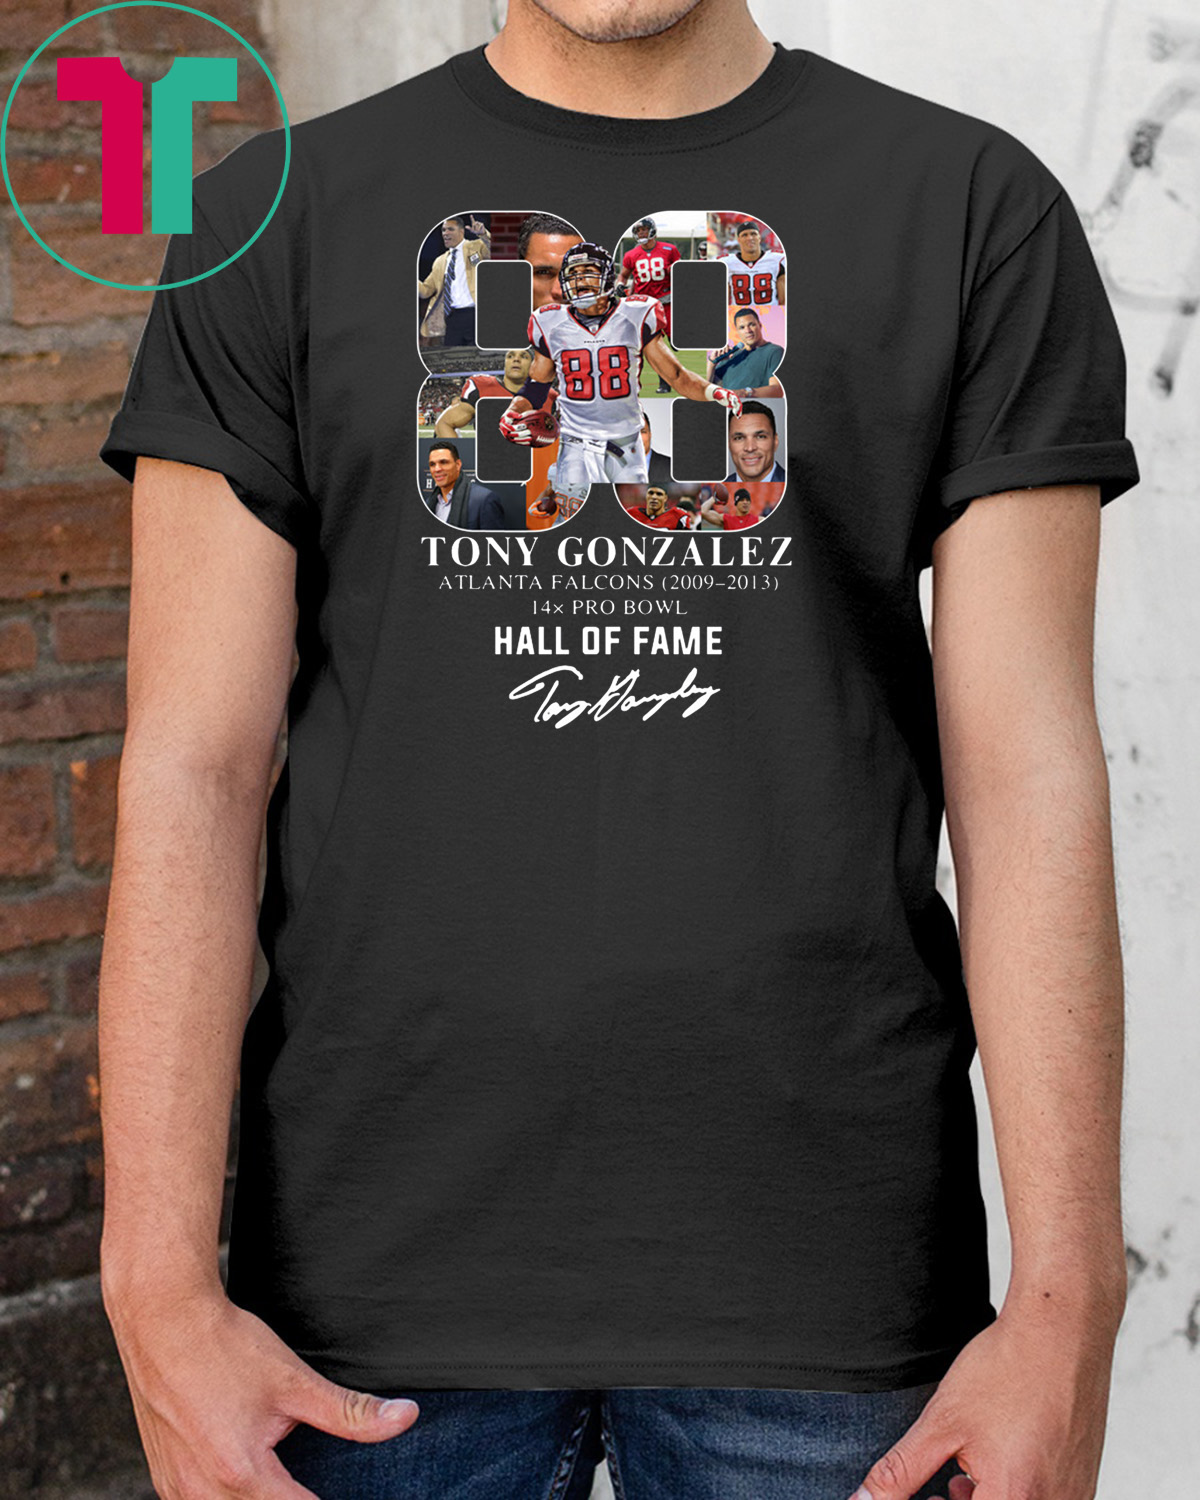 5556f576 88 tony gonzalez atlanta falcons hall of fame signature shirt -  Reviewshirts Office